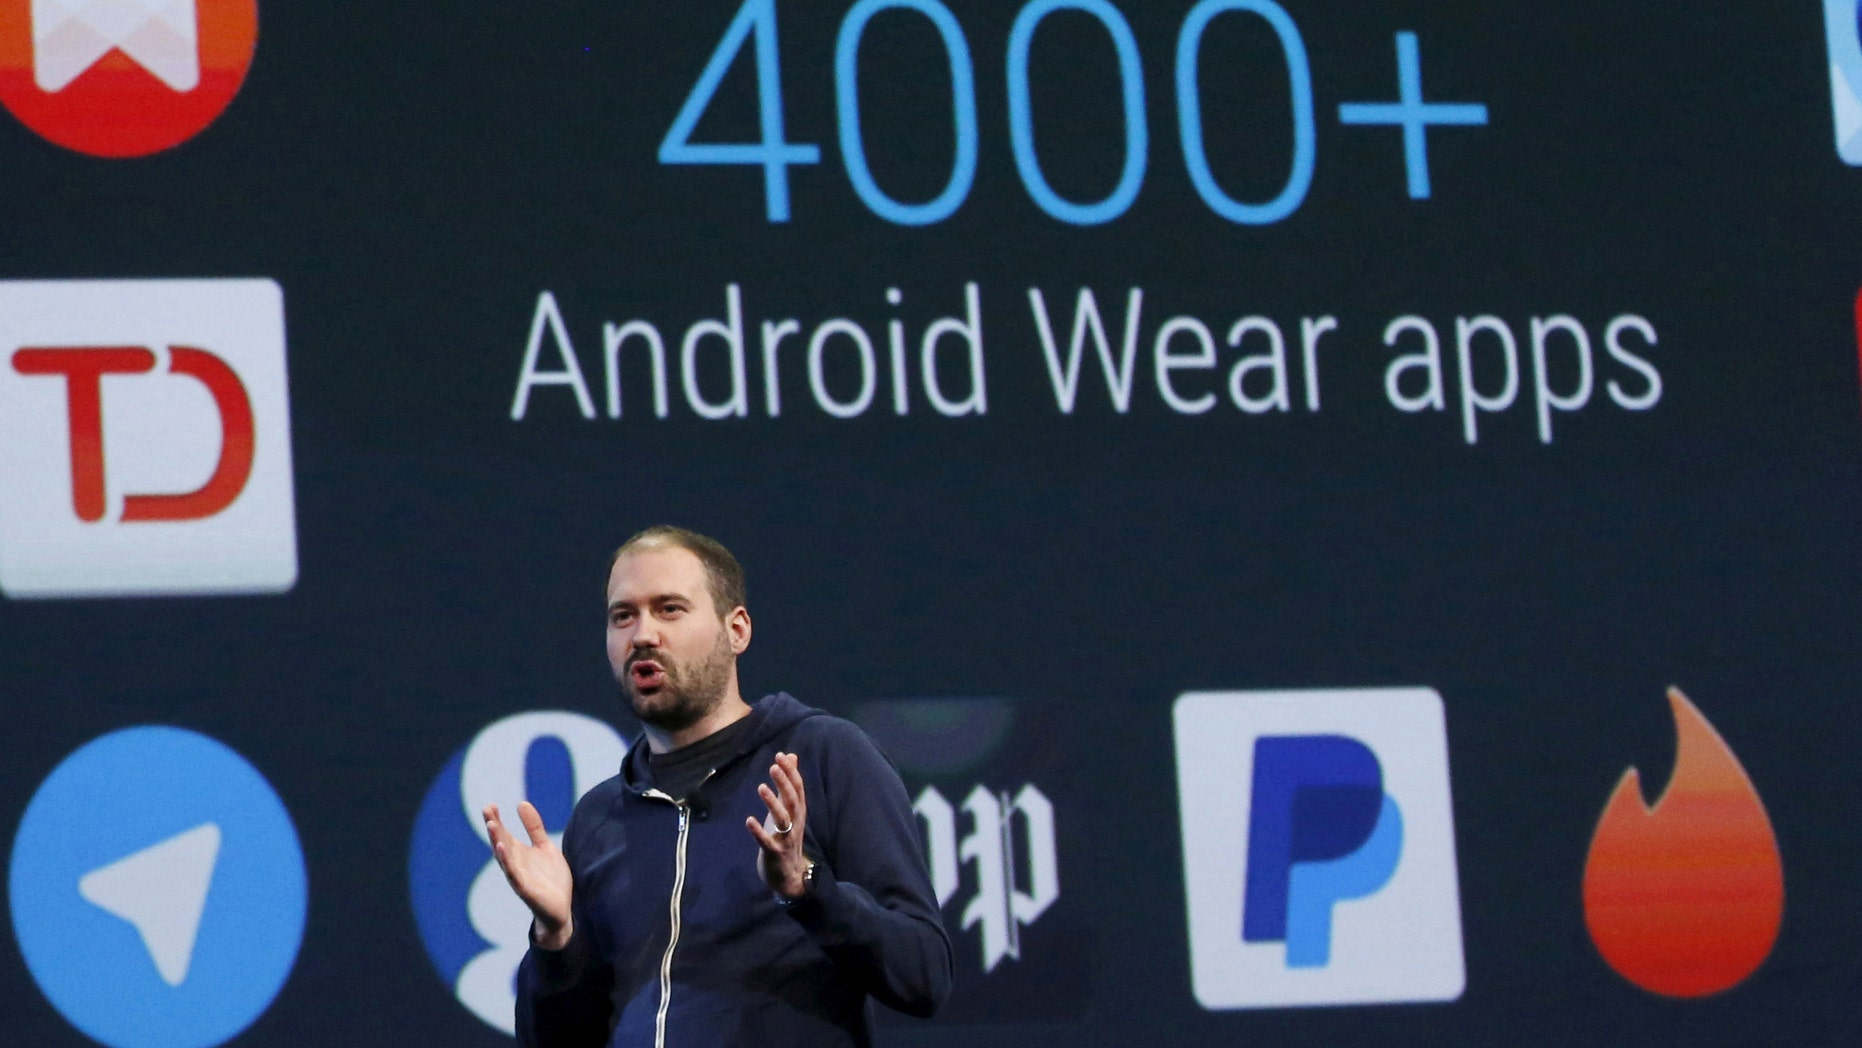 David Singleton, Director of Android Wear, speaks during the Google I/O developers conference in San Francisco, California May 28, 2015. REUTERS/Robert Galbraith - RTX1EZMC